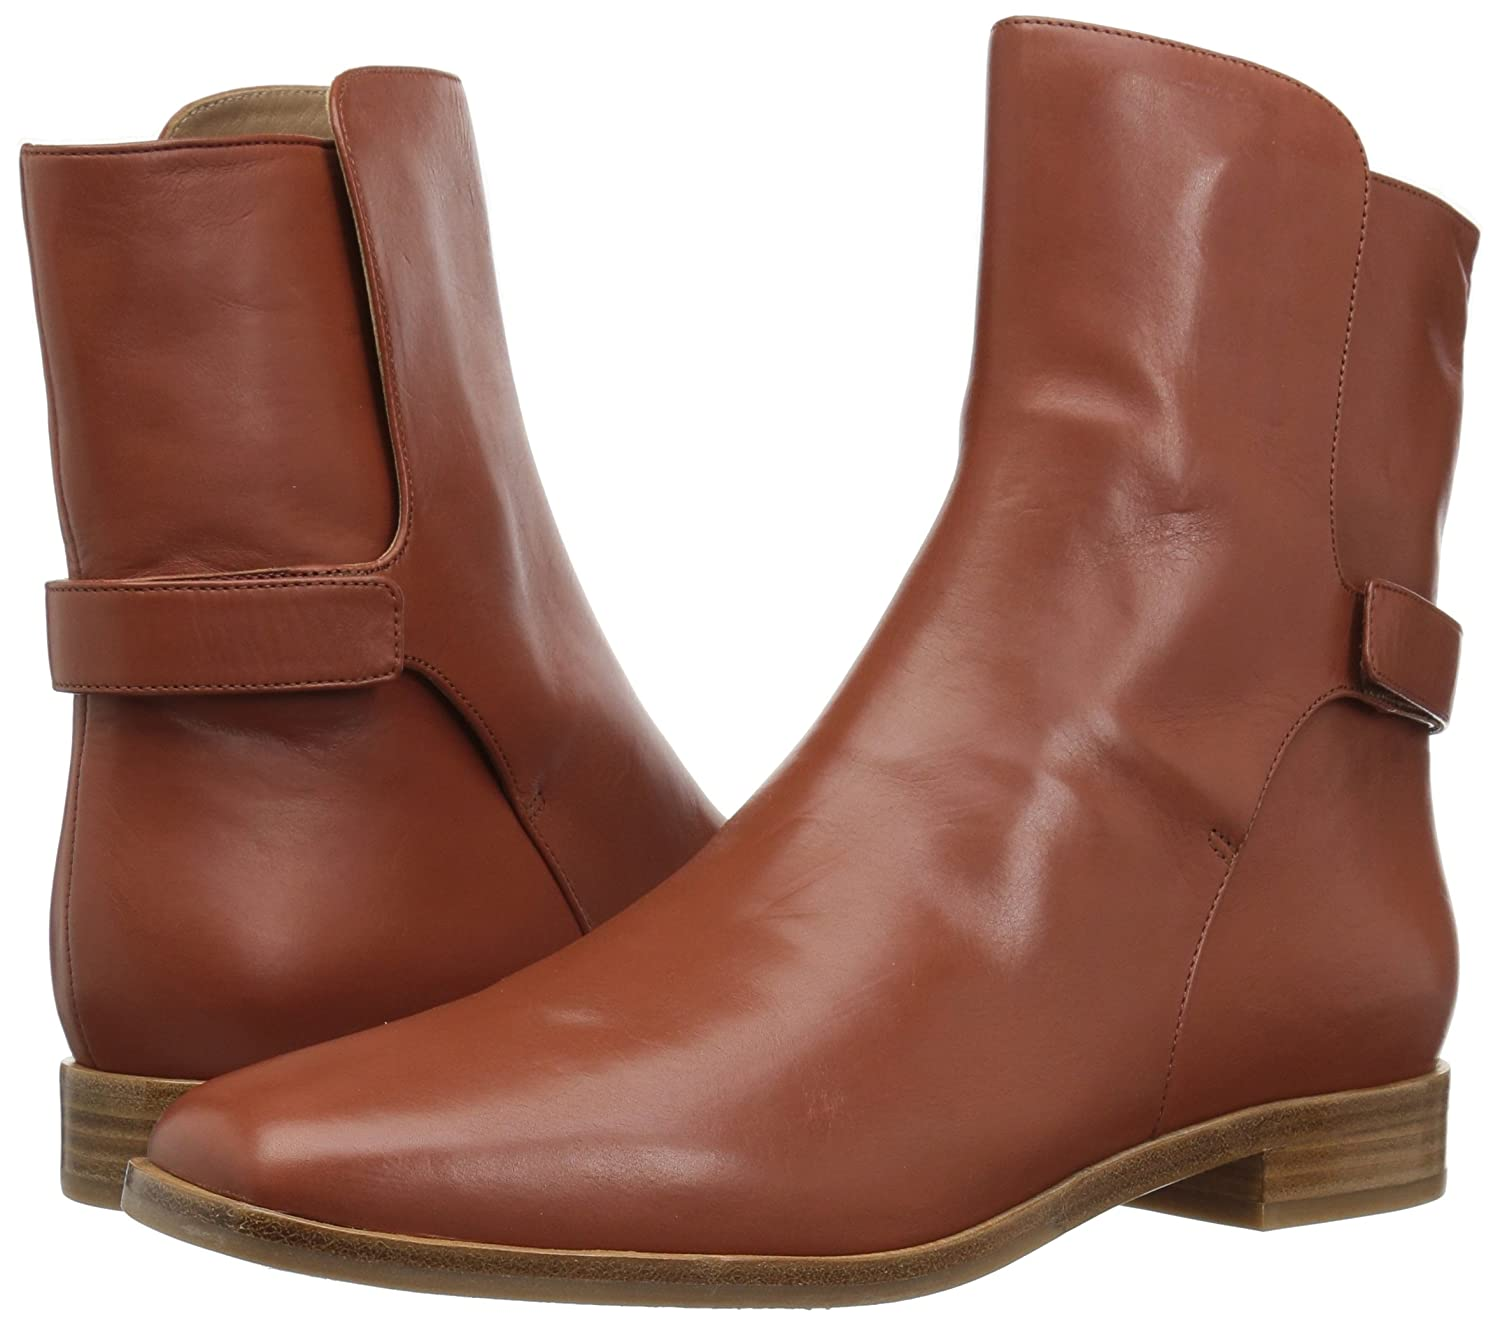 Via Spiga Women's B(M) Vaughan Ankle Boot B06XGTN8HF 4.5 B(M) Women's US|Chestnut Leather 0355d3